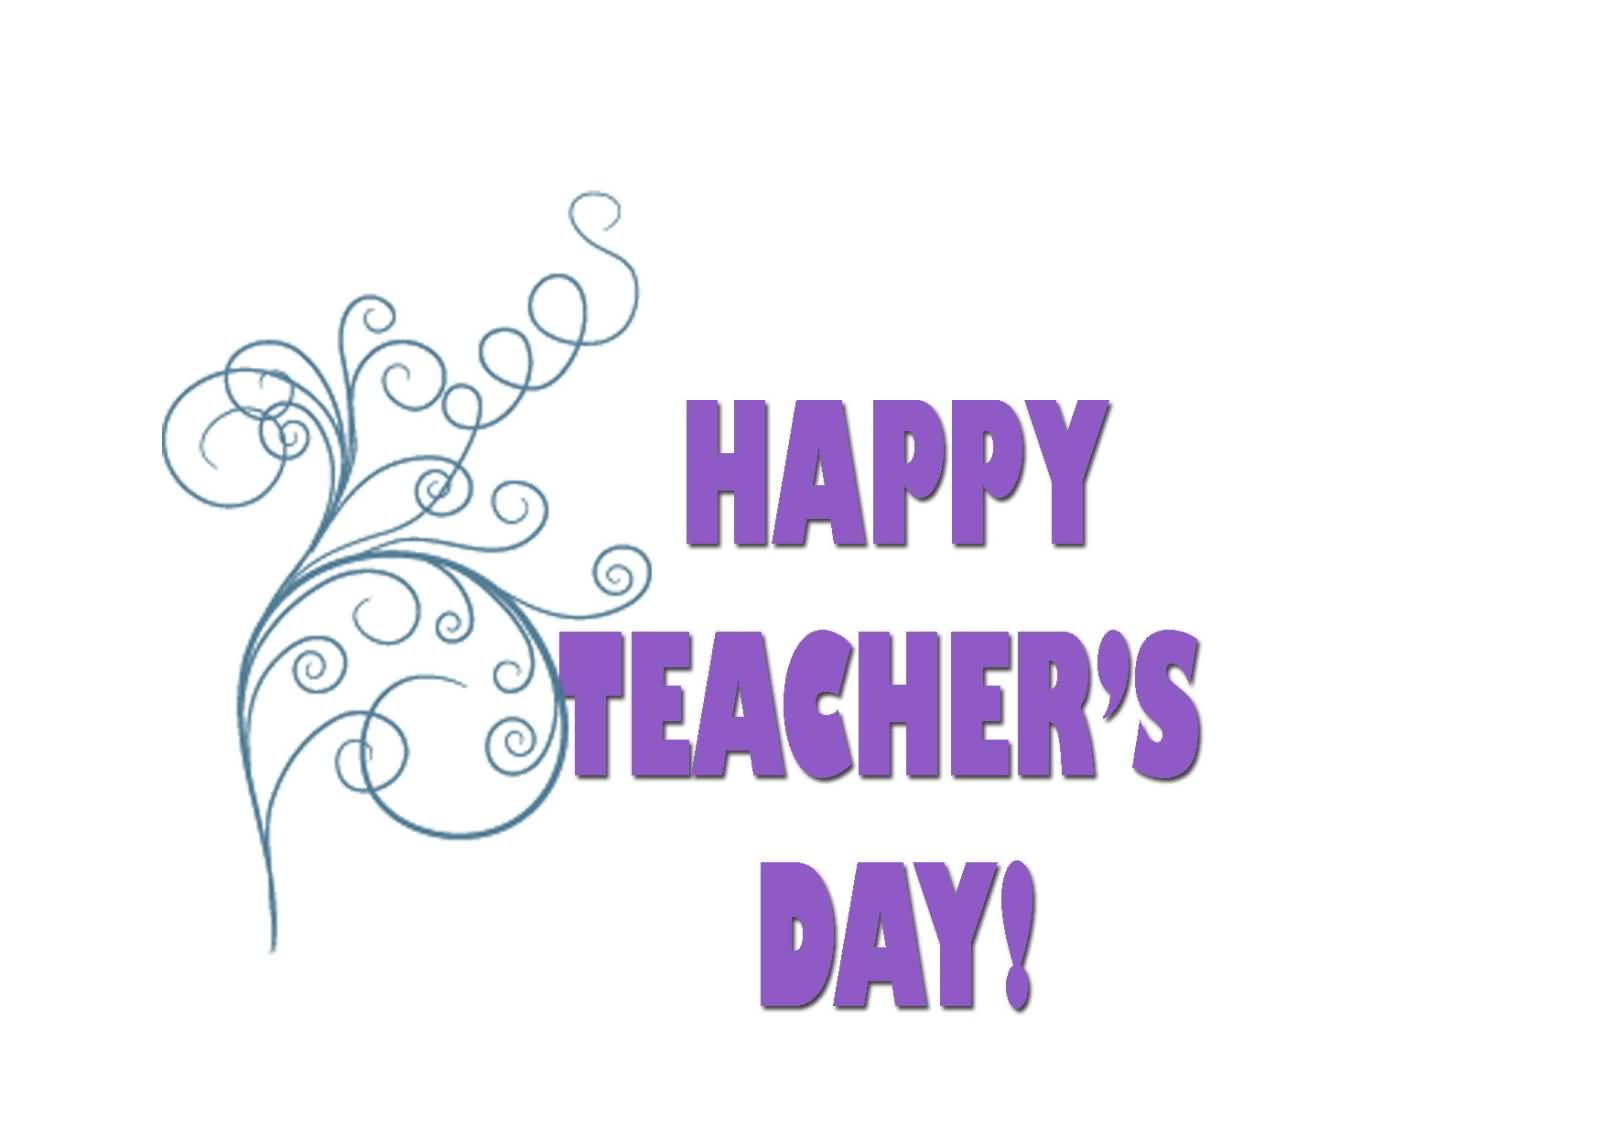 40 Best Greetings For Happy World Teachers Day 2016 Images And Photos 1600x1135